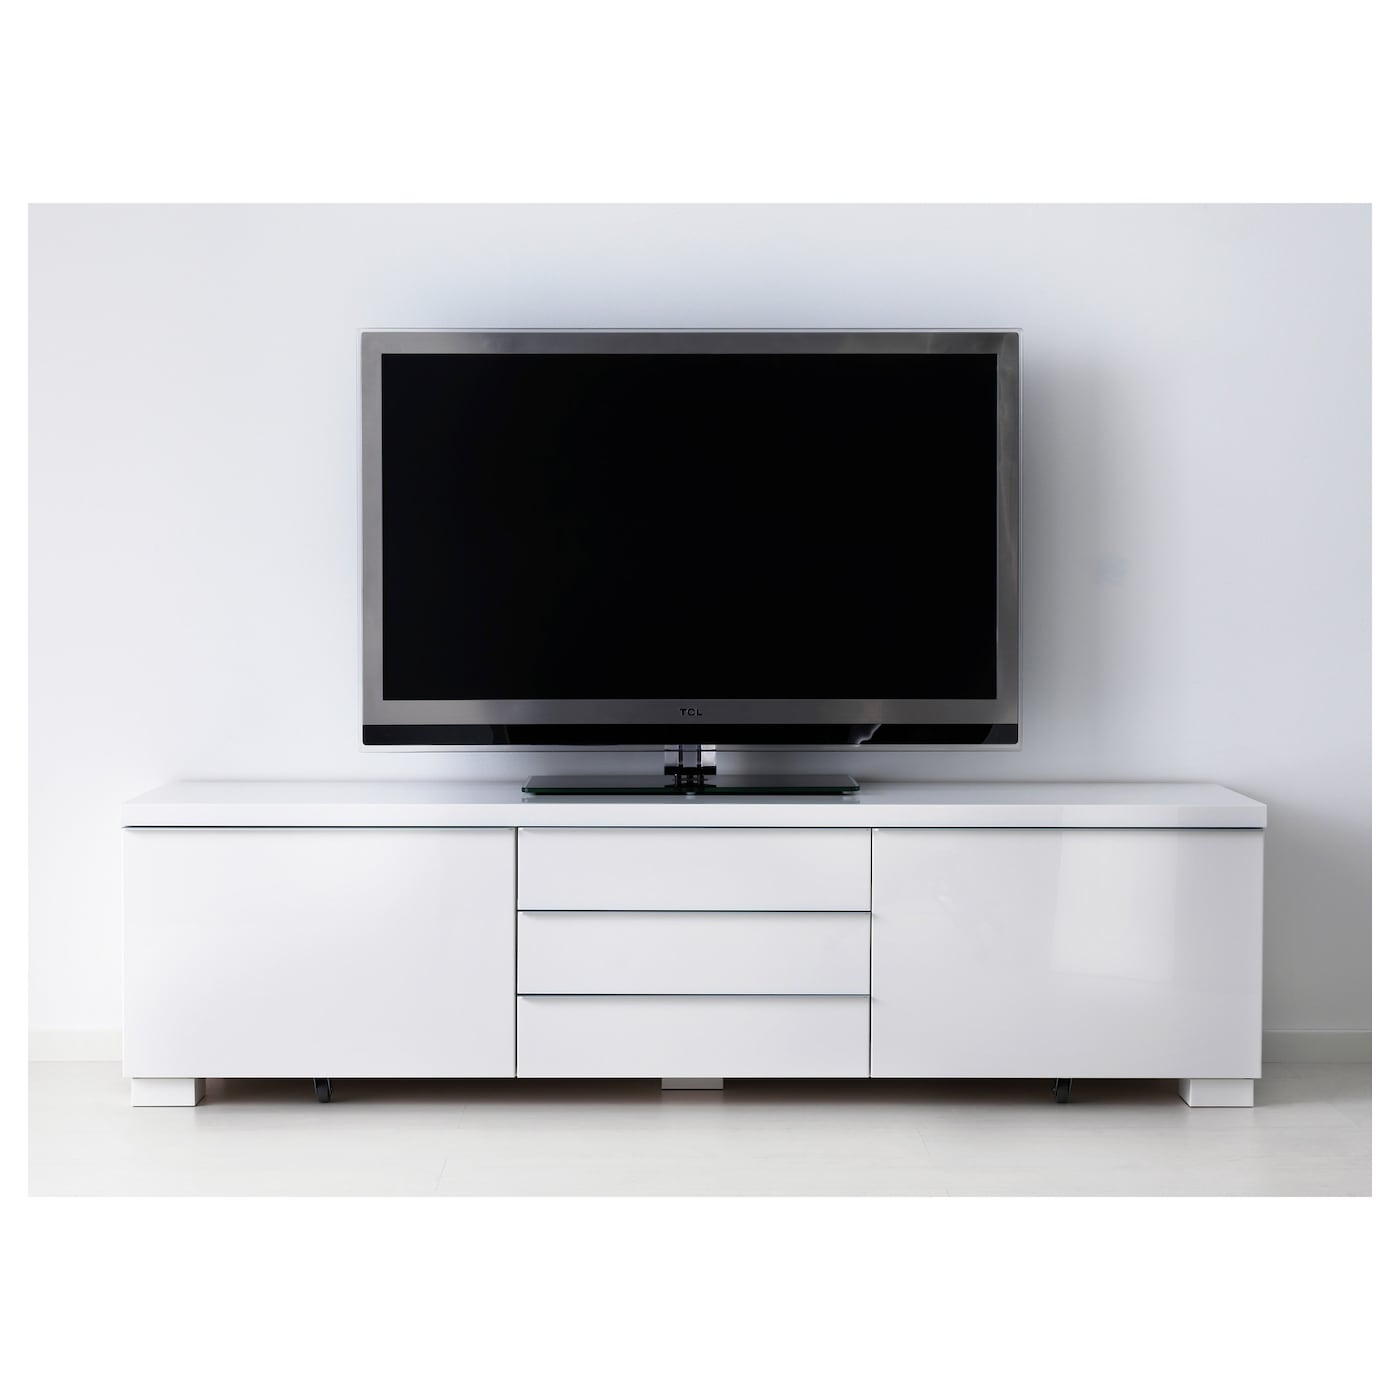 Best Burs Tv Bench High Gloss White 180×41 Cm Ikea # Ikea Meuble Tv Besta